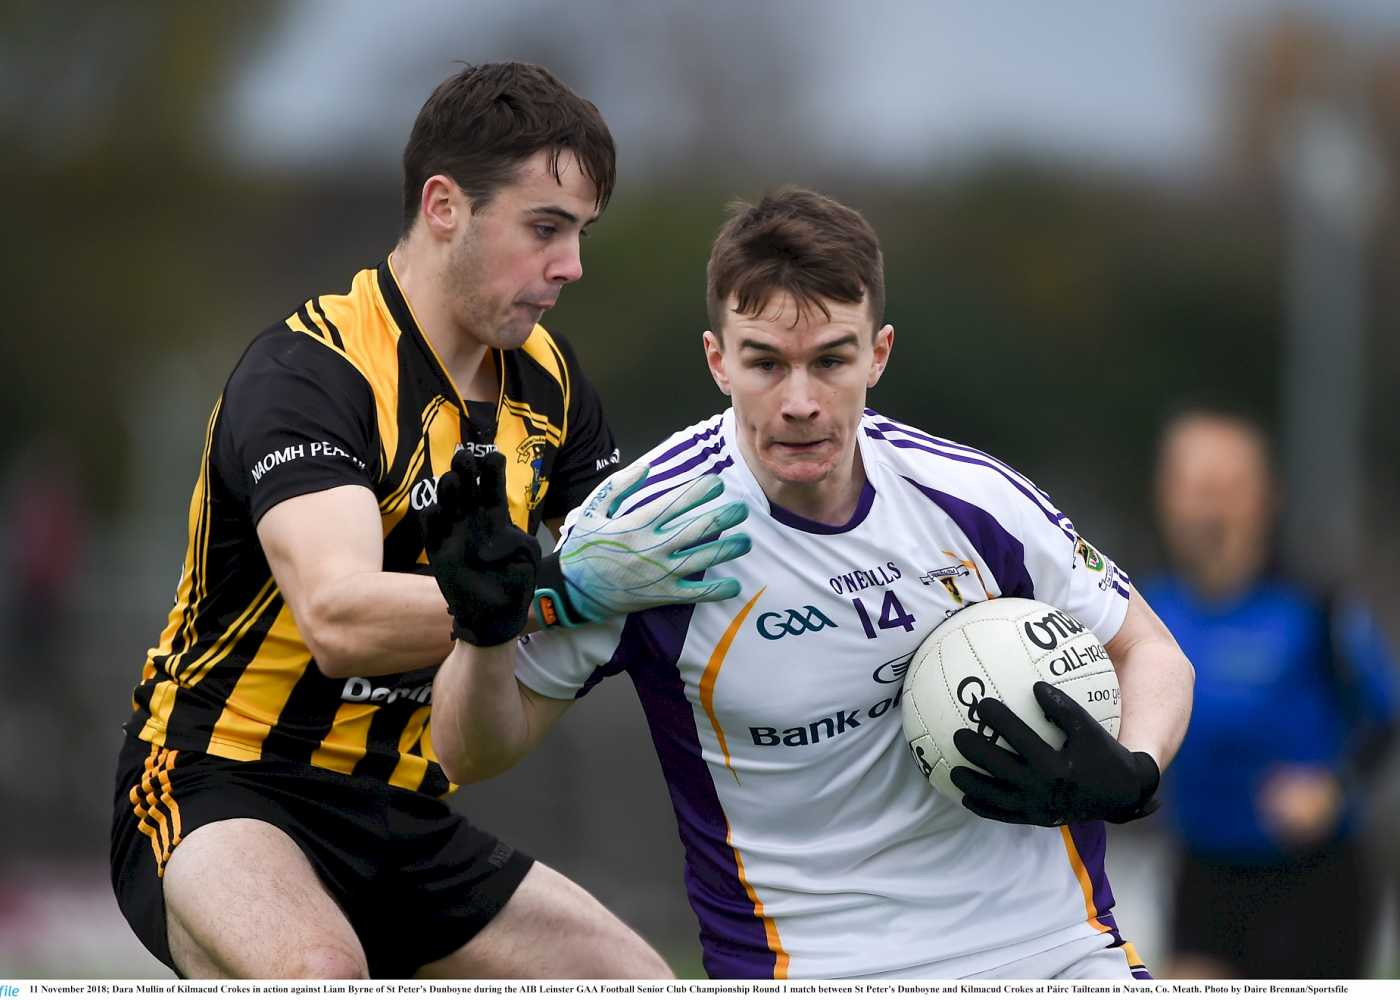 Mannion fires Crokes to Leinster win over Dunboyne